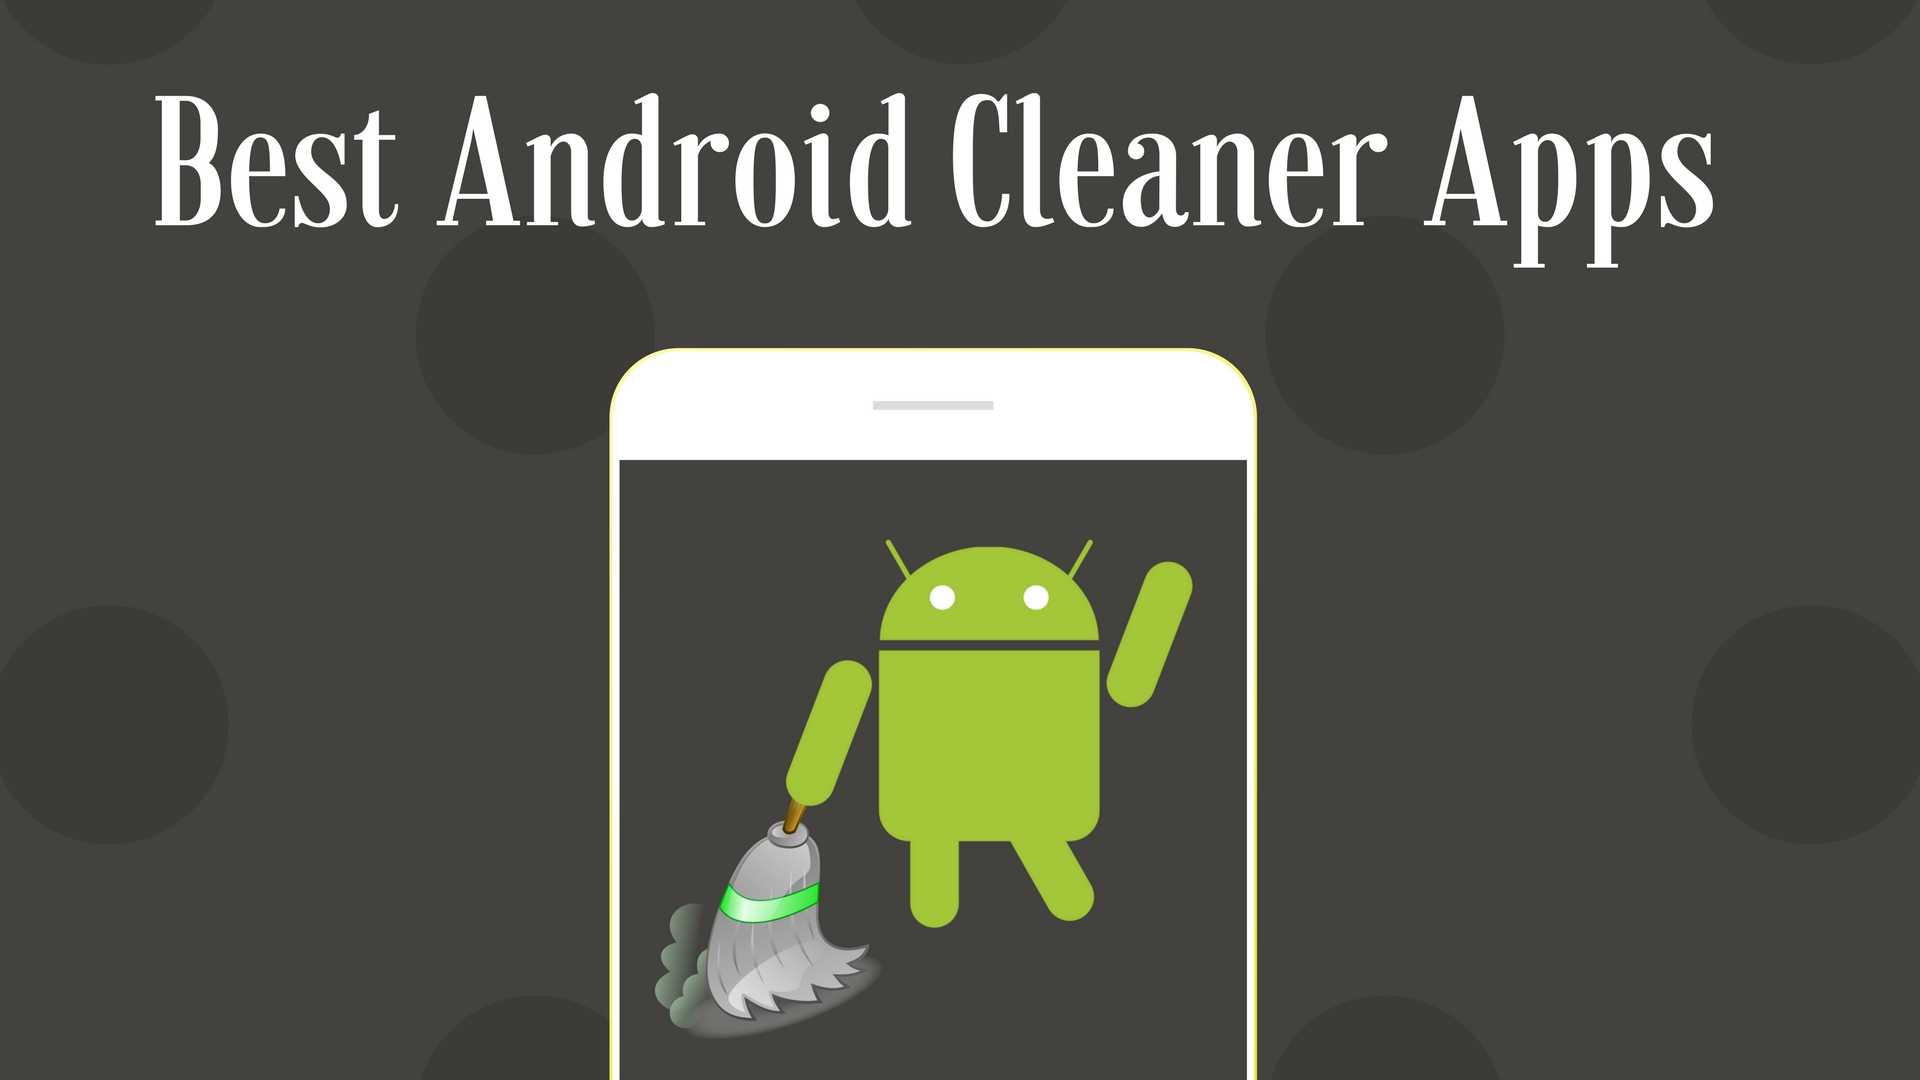 Cleaner Apps